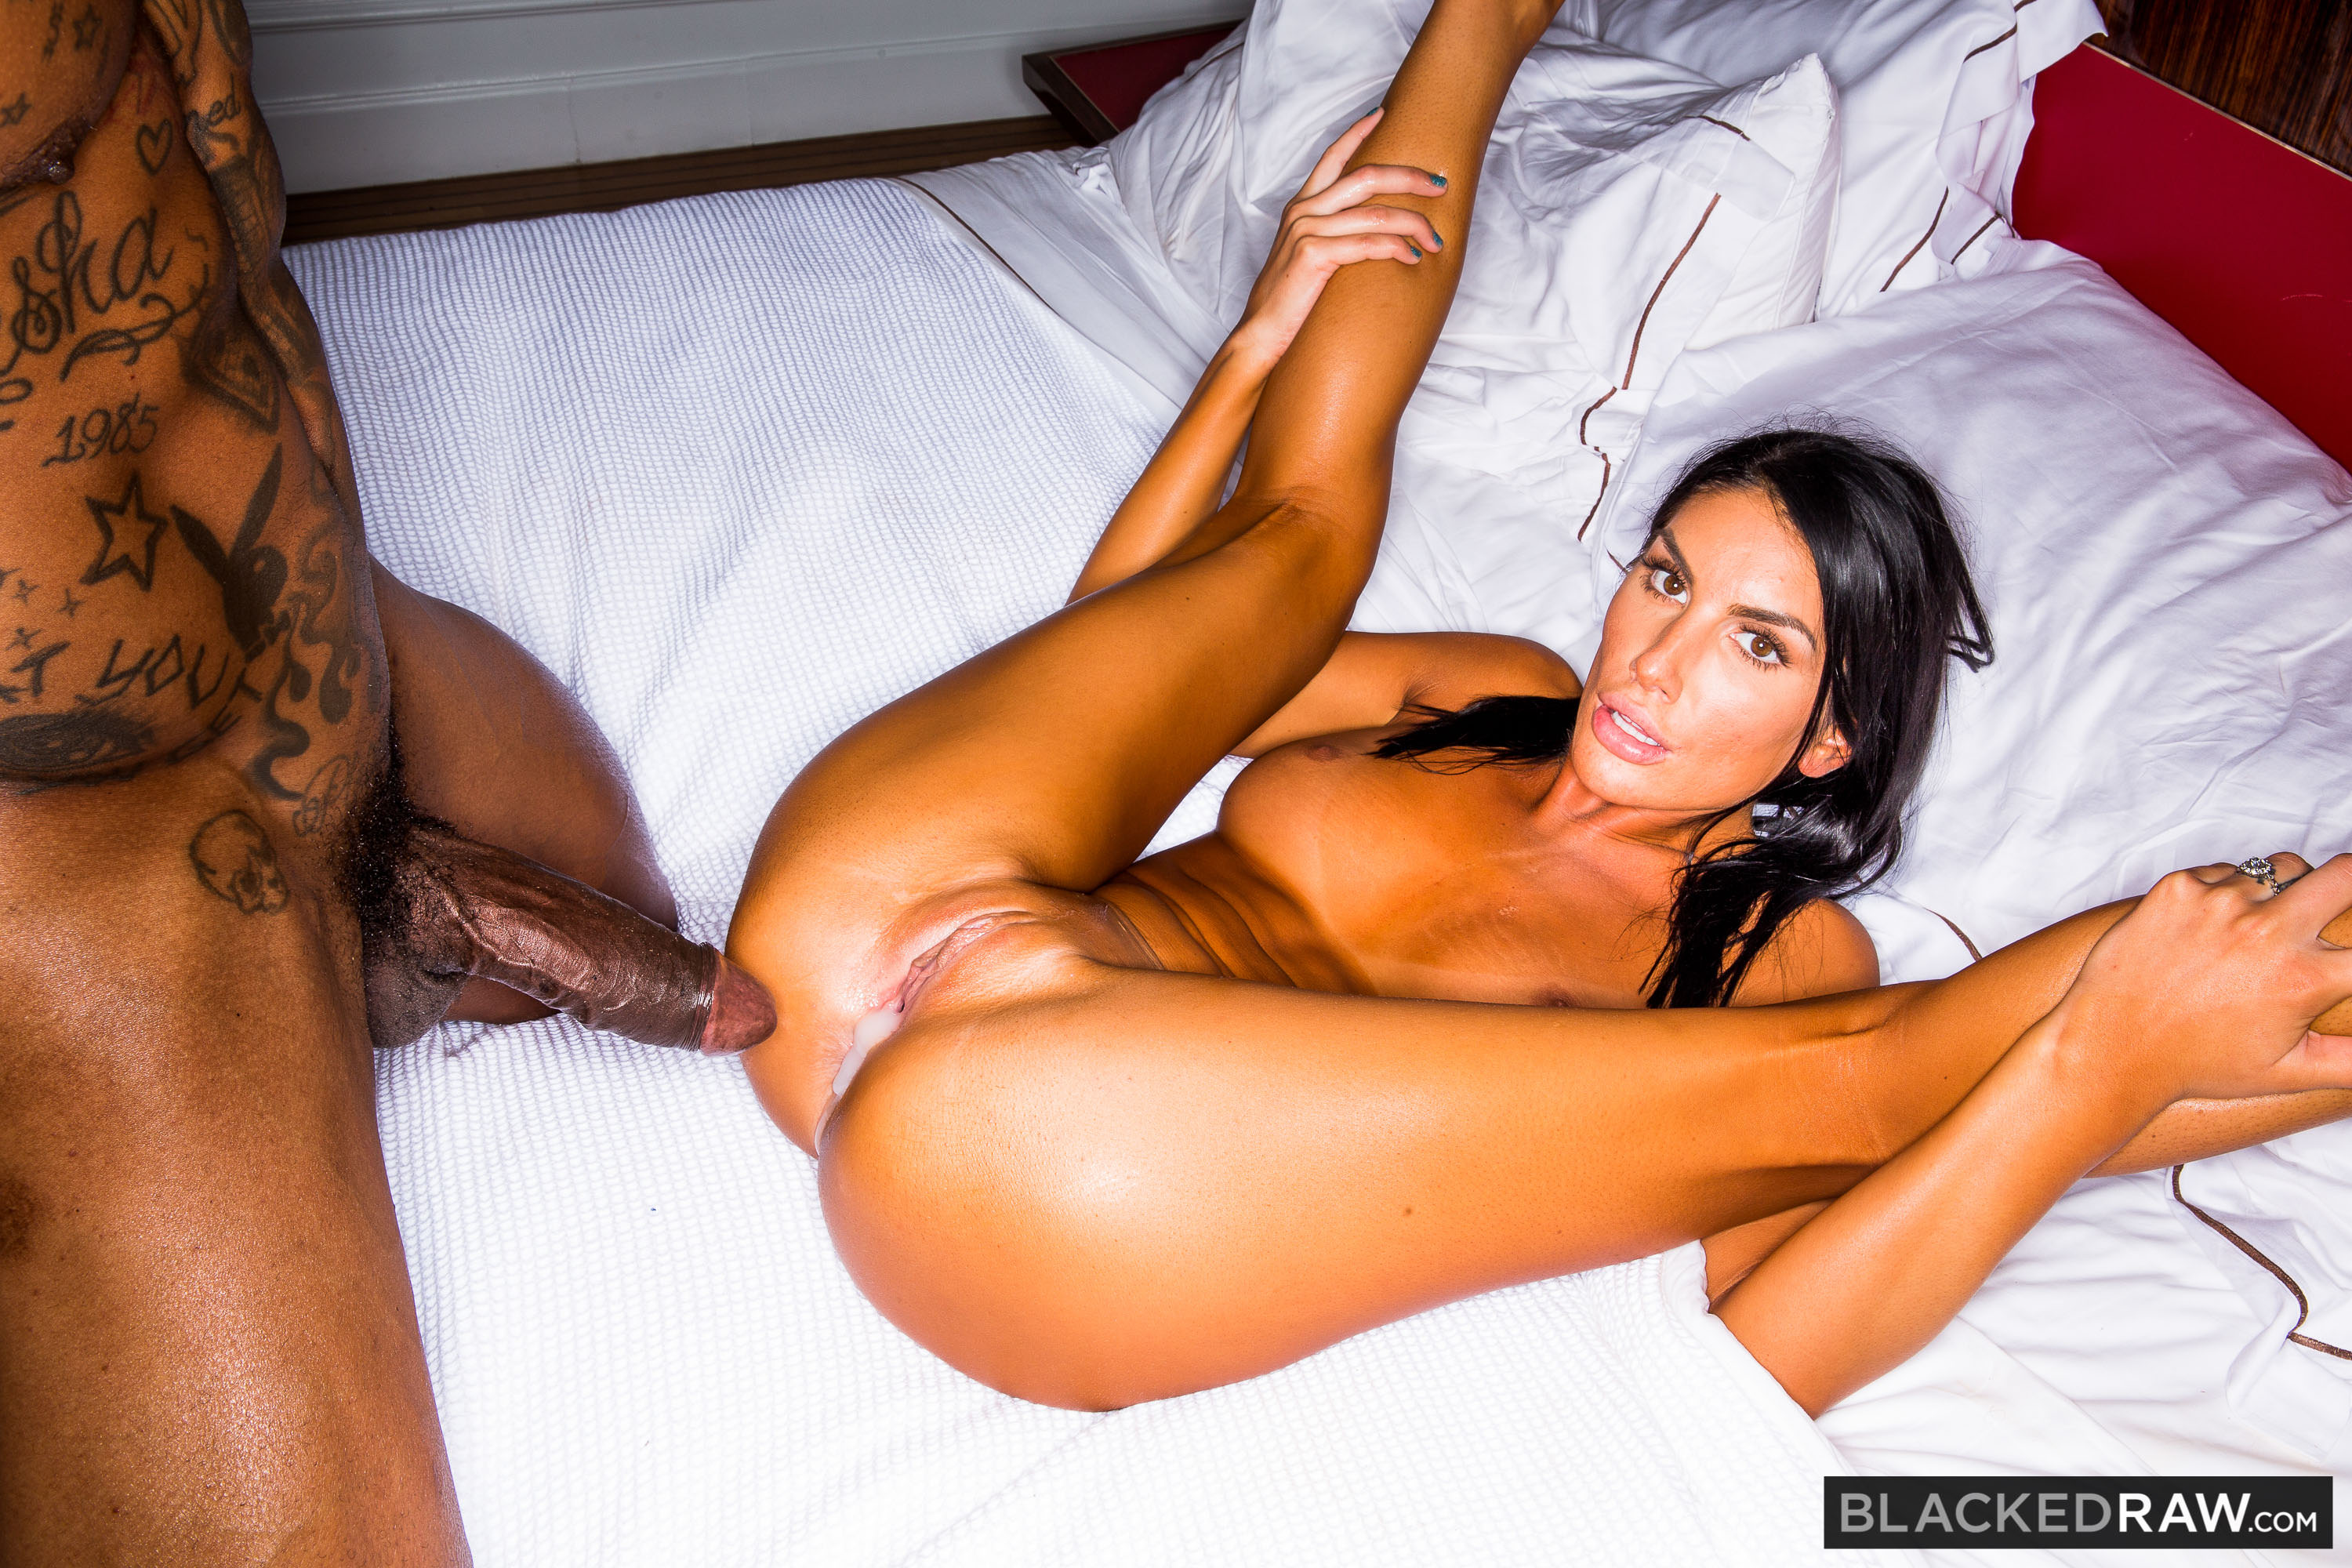 August ames raw